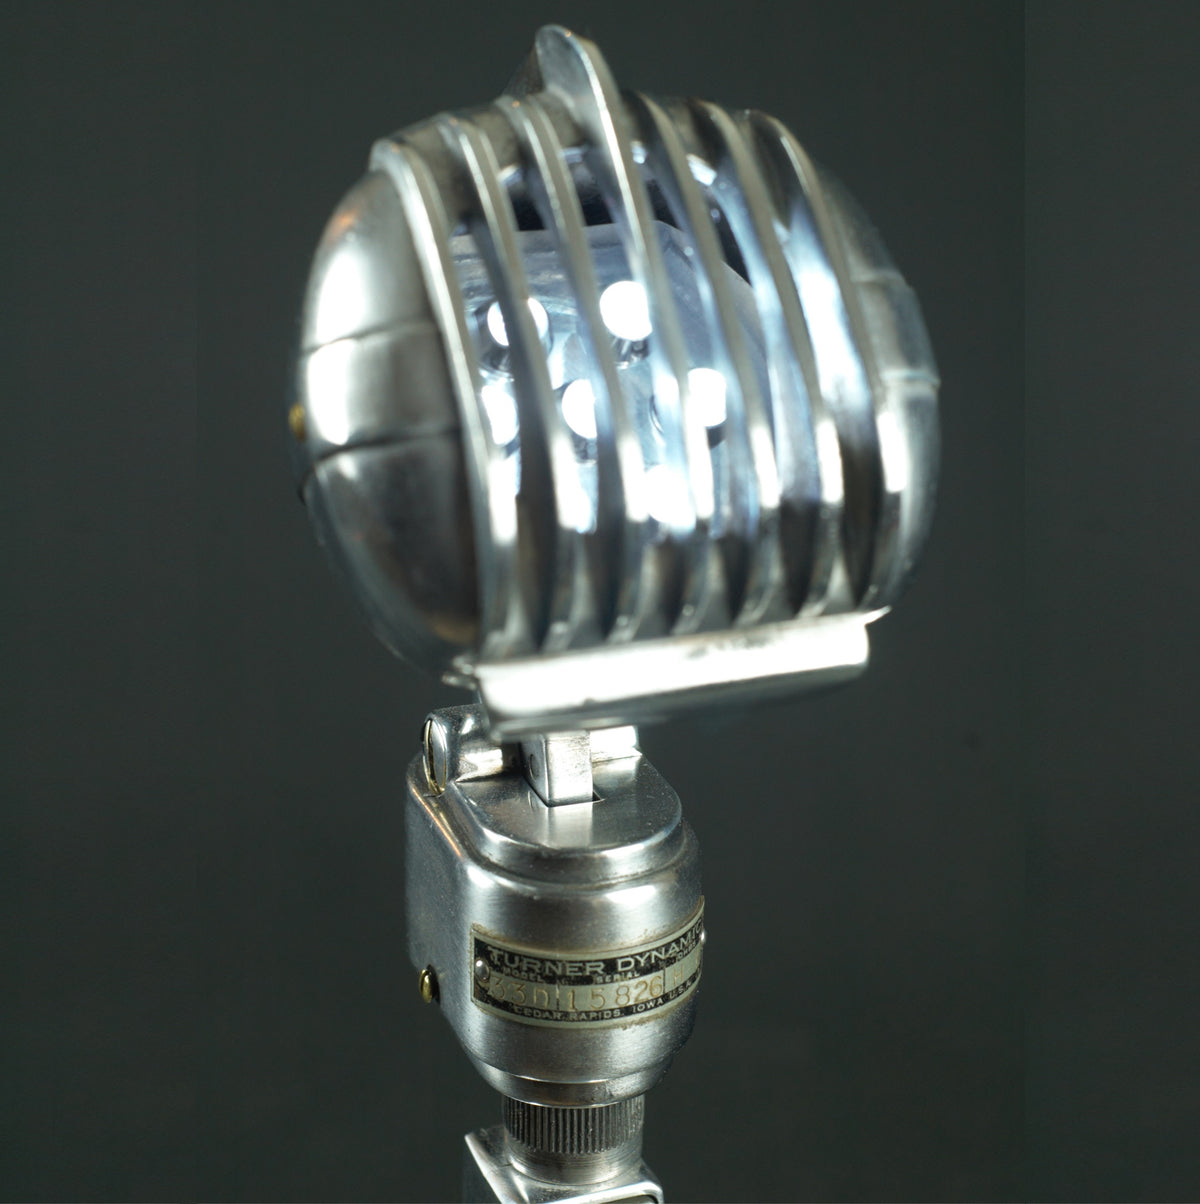 Turner Dynamic 33 Mic Lamp